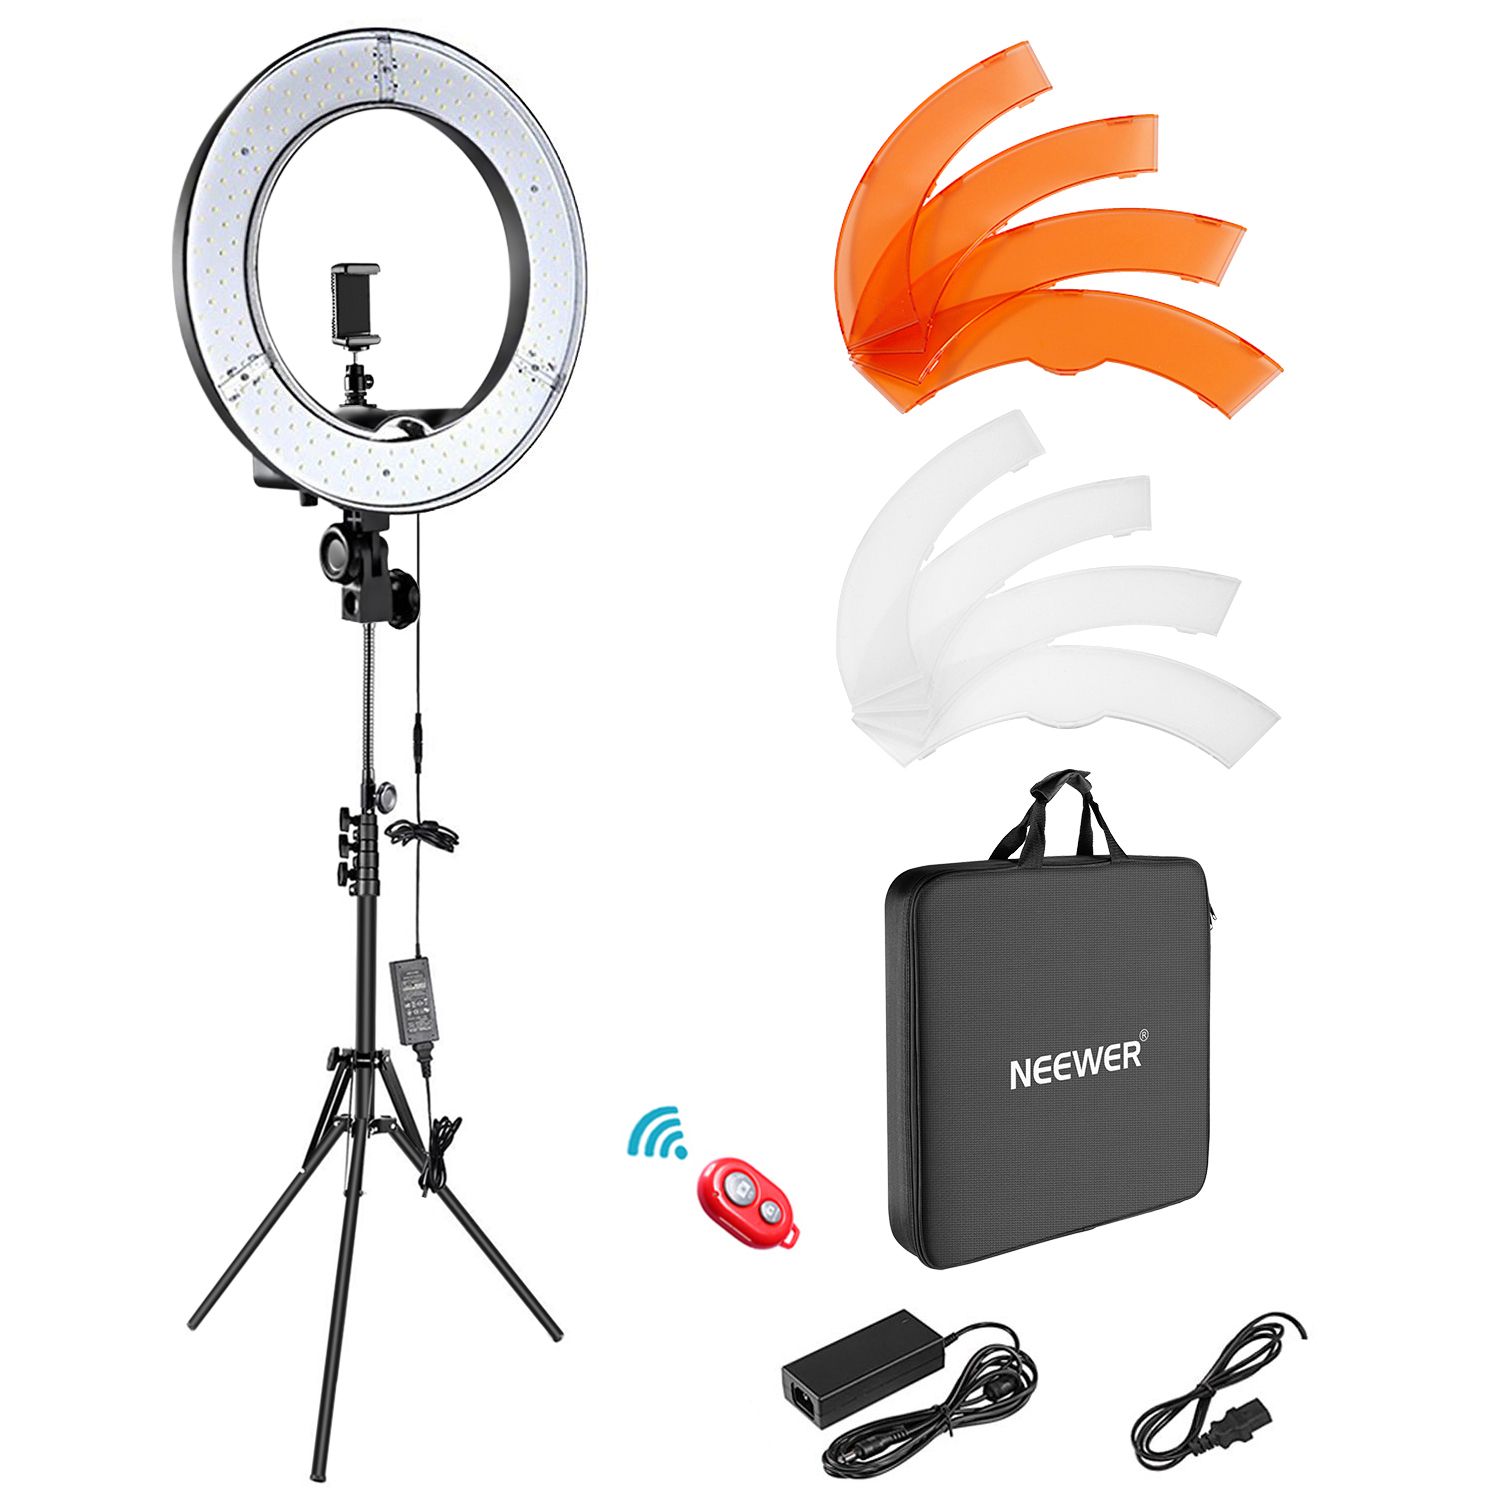 Neewer Camera Photo Video Lightning Kit: 18 inches/48 centimeters Outer 55W 5500K Dimmable LED Ring Light, Light Stand, Bluetooth Receiver for Smartphone, Youtube, Vine Self-Portrait Video Shooting Image